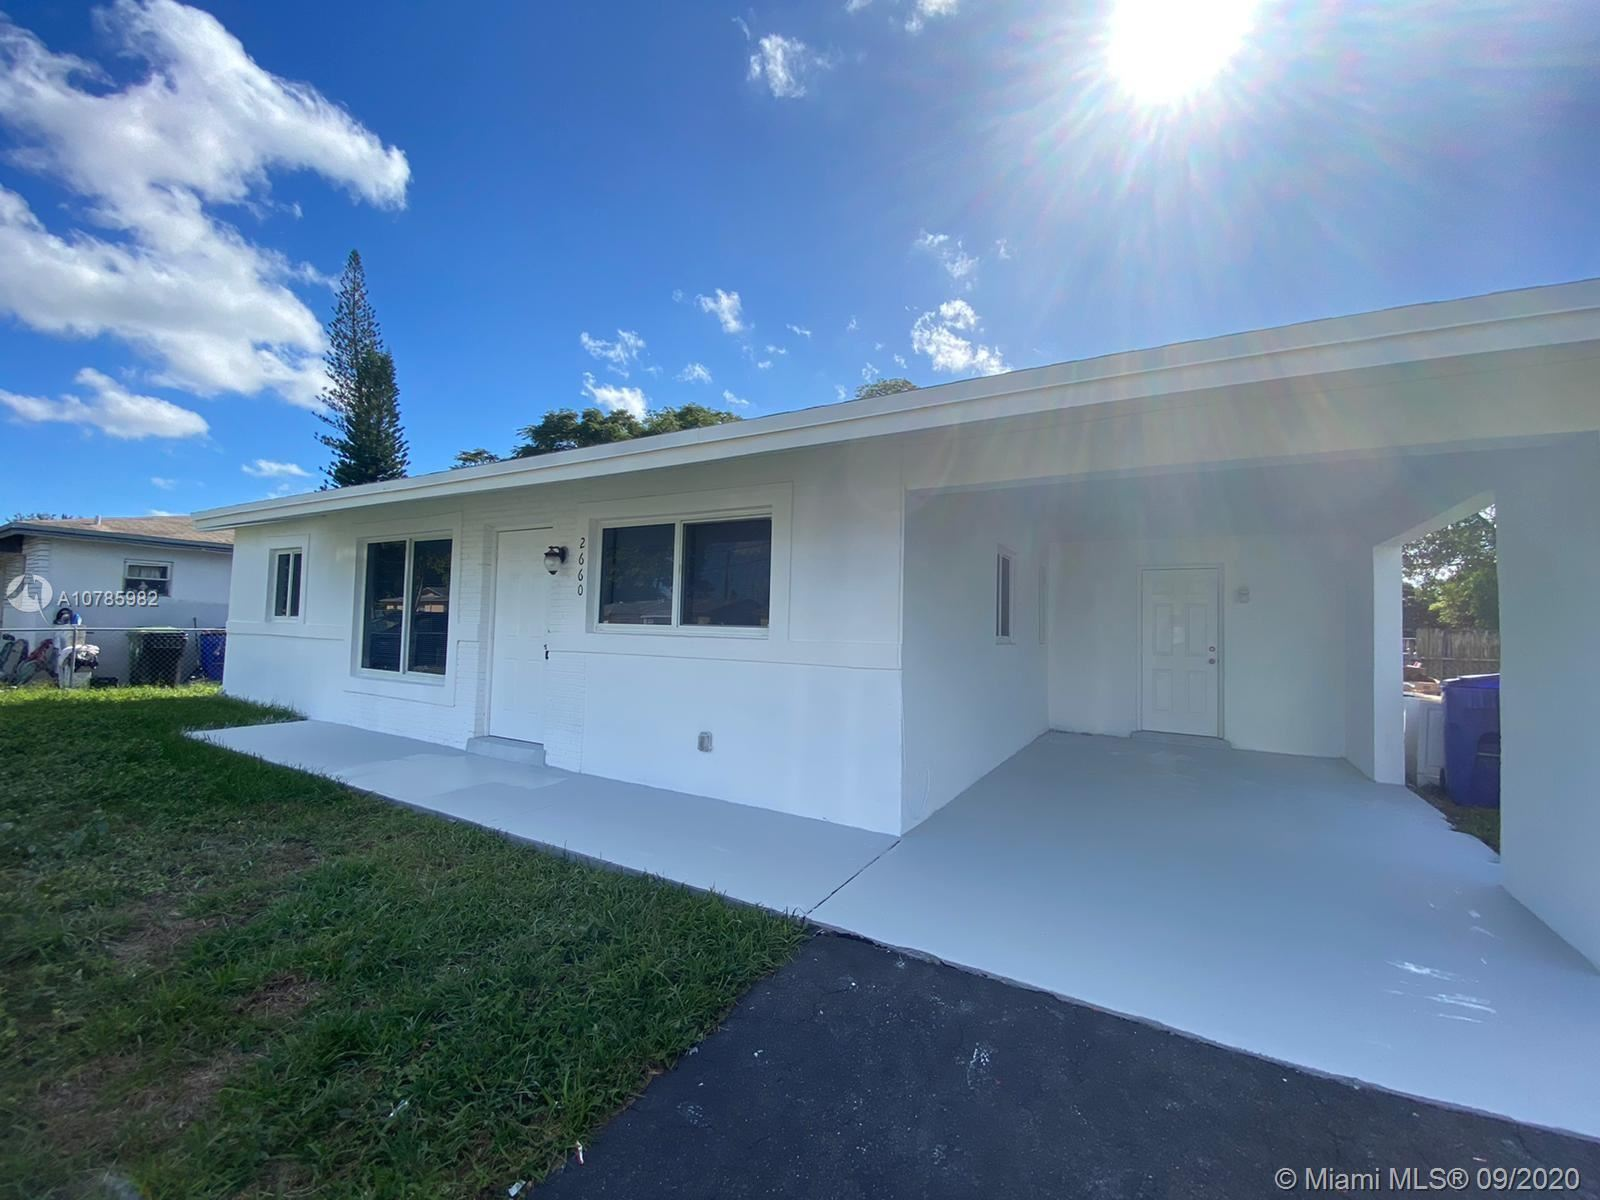 2660 NW 21st St, Fort Lauderdale, FL 33311 - #: A10785982